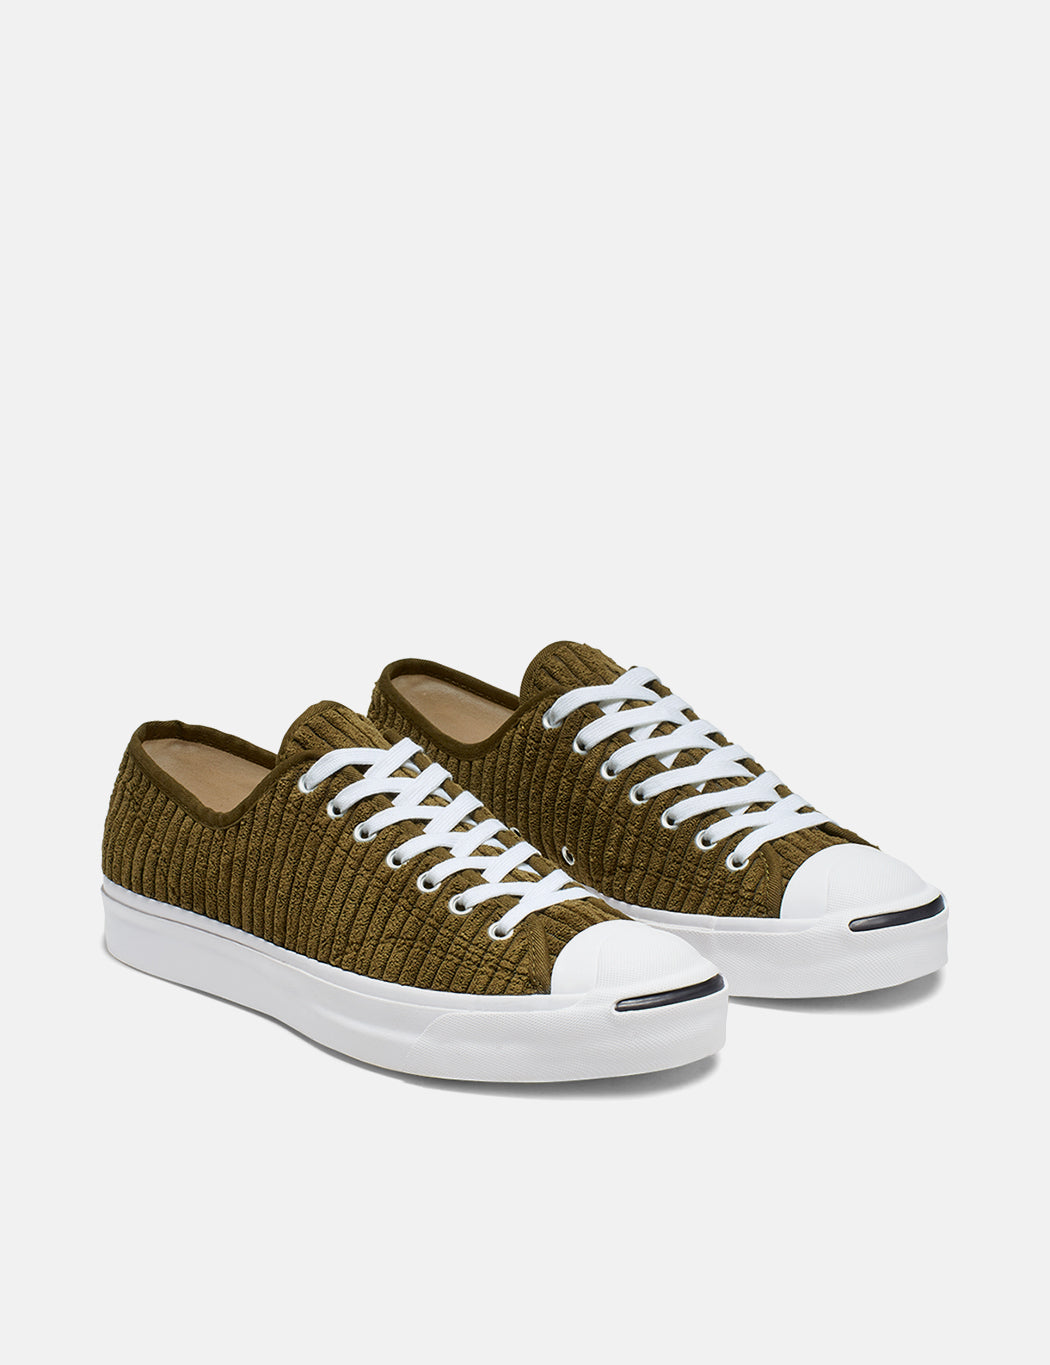 Converse Jack Purcell 165139C (Cord) - Surplus Green | URBAN EXCESS.